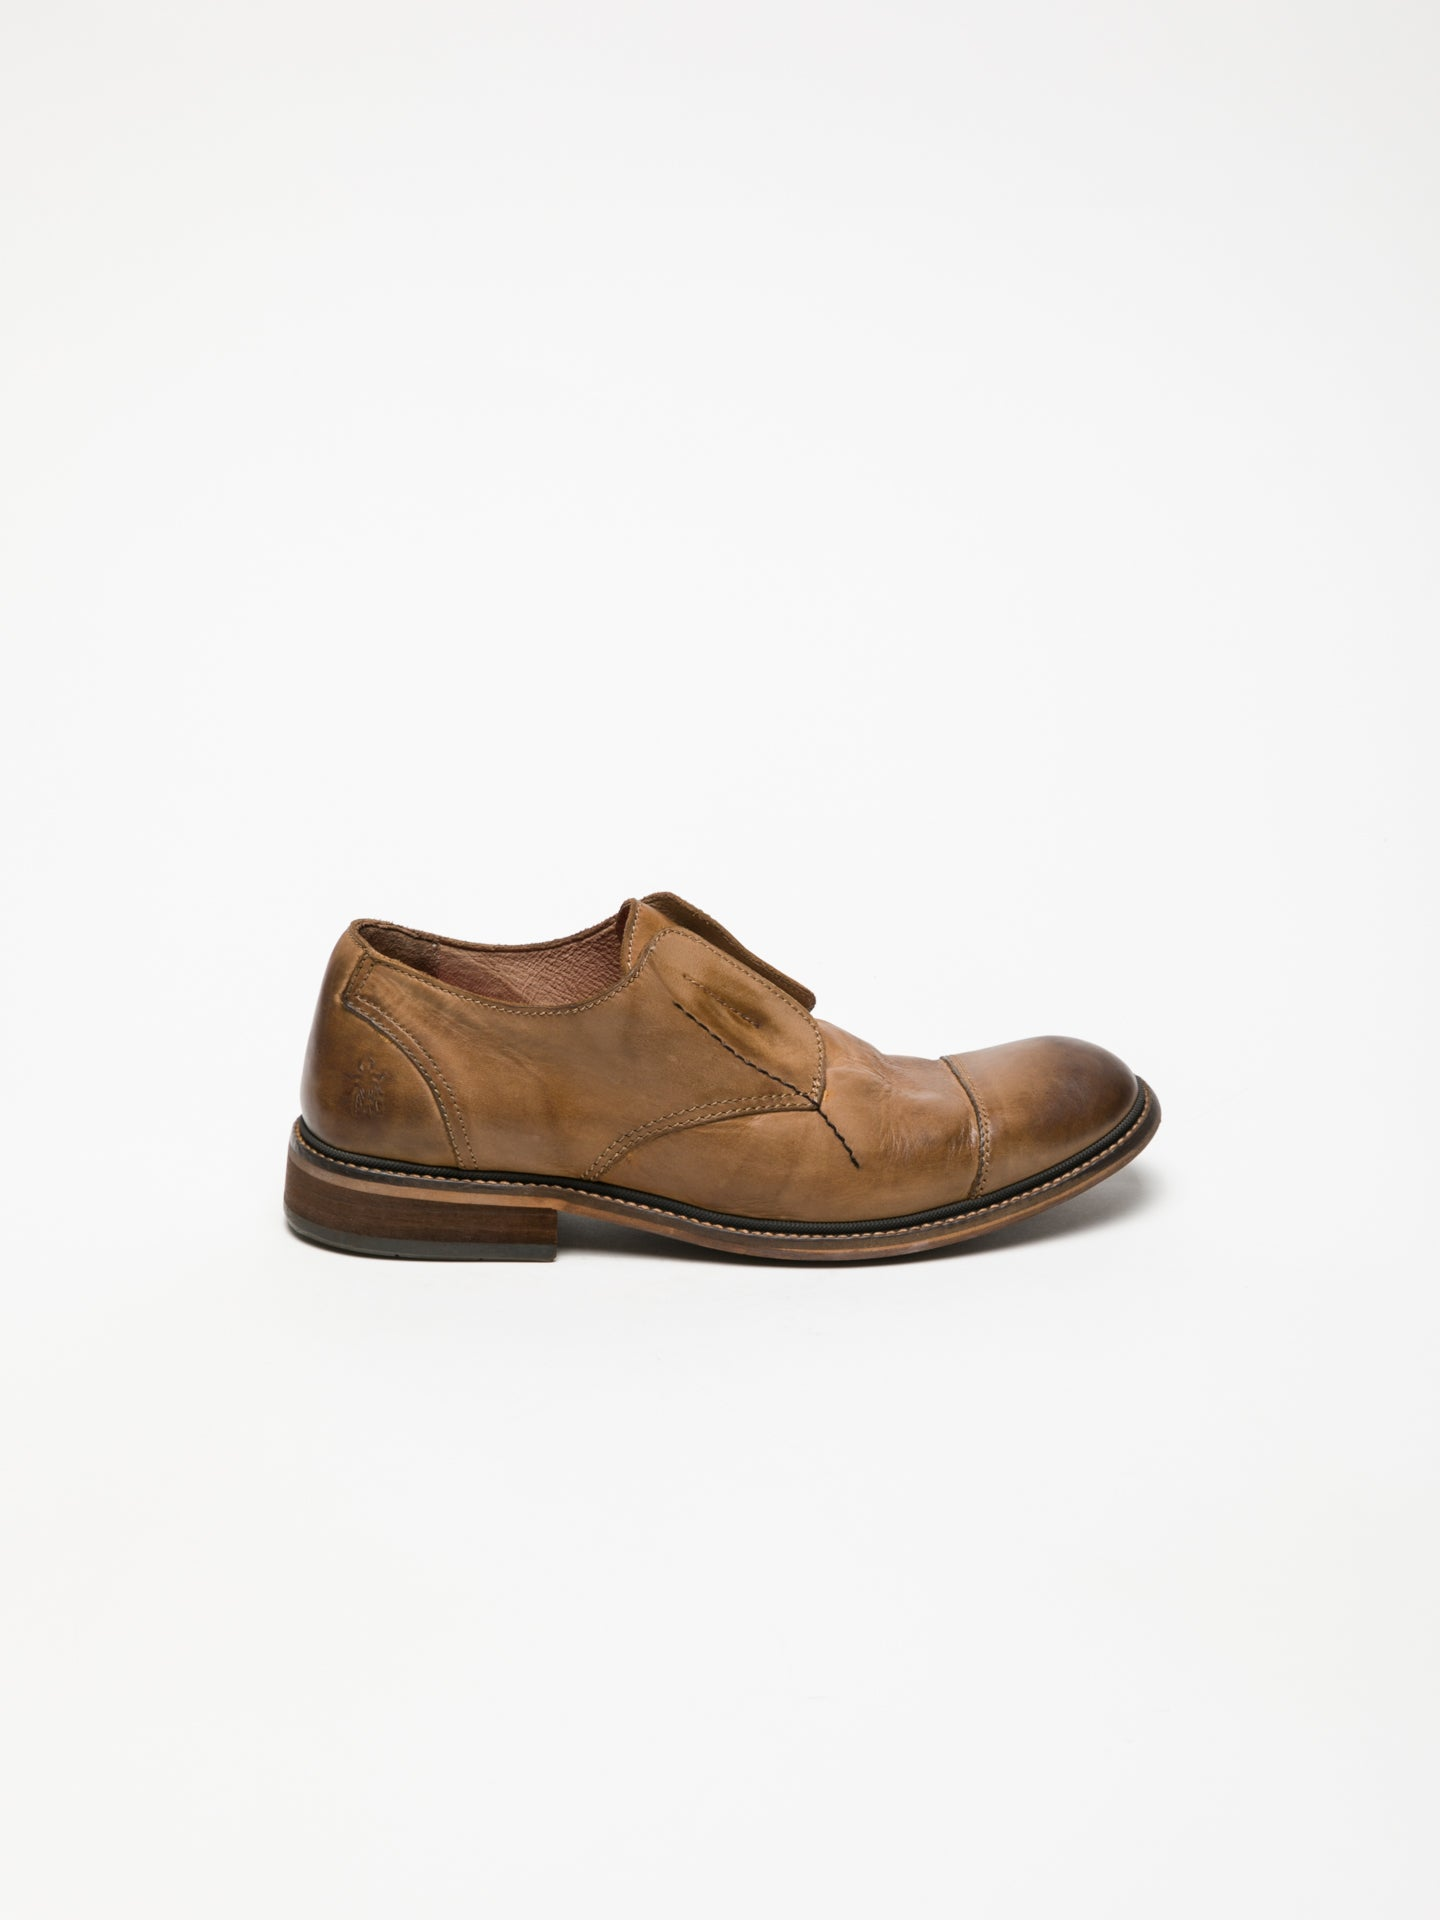 Fly London Brown Flat Shoes